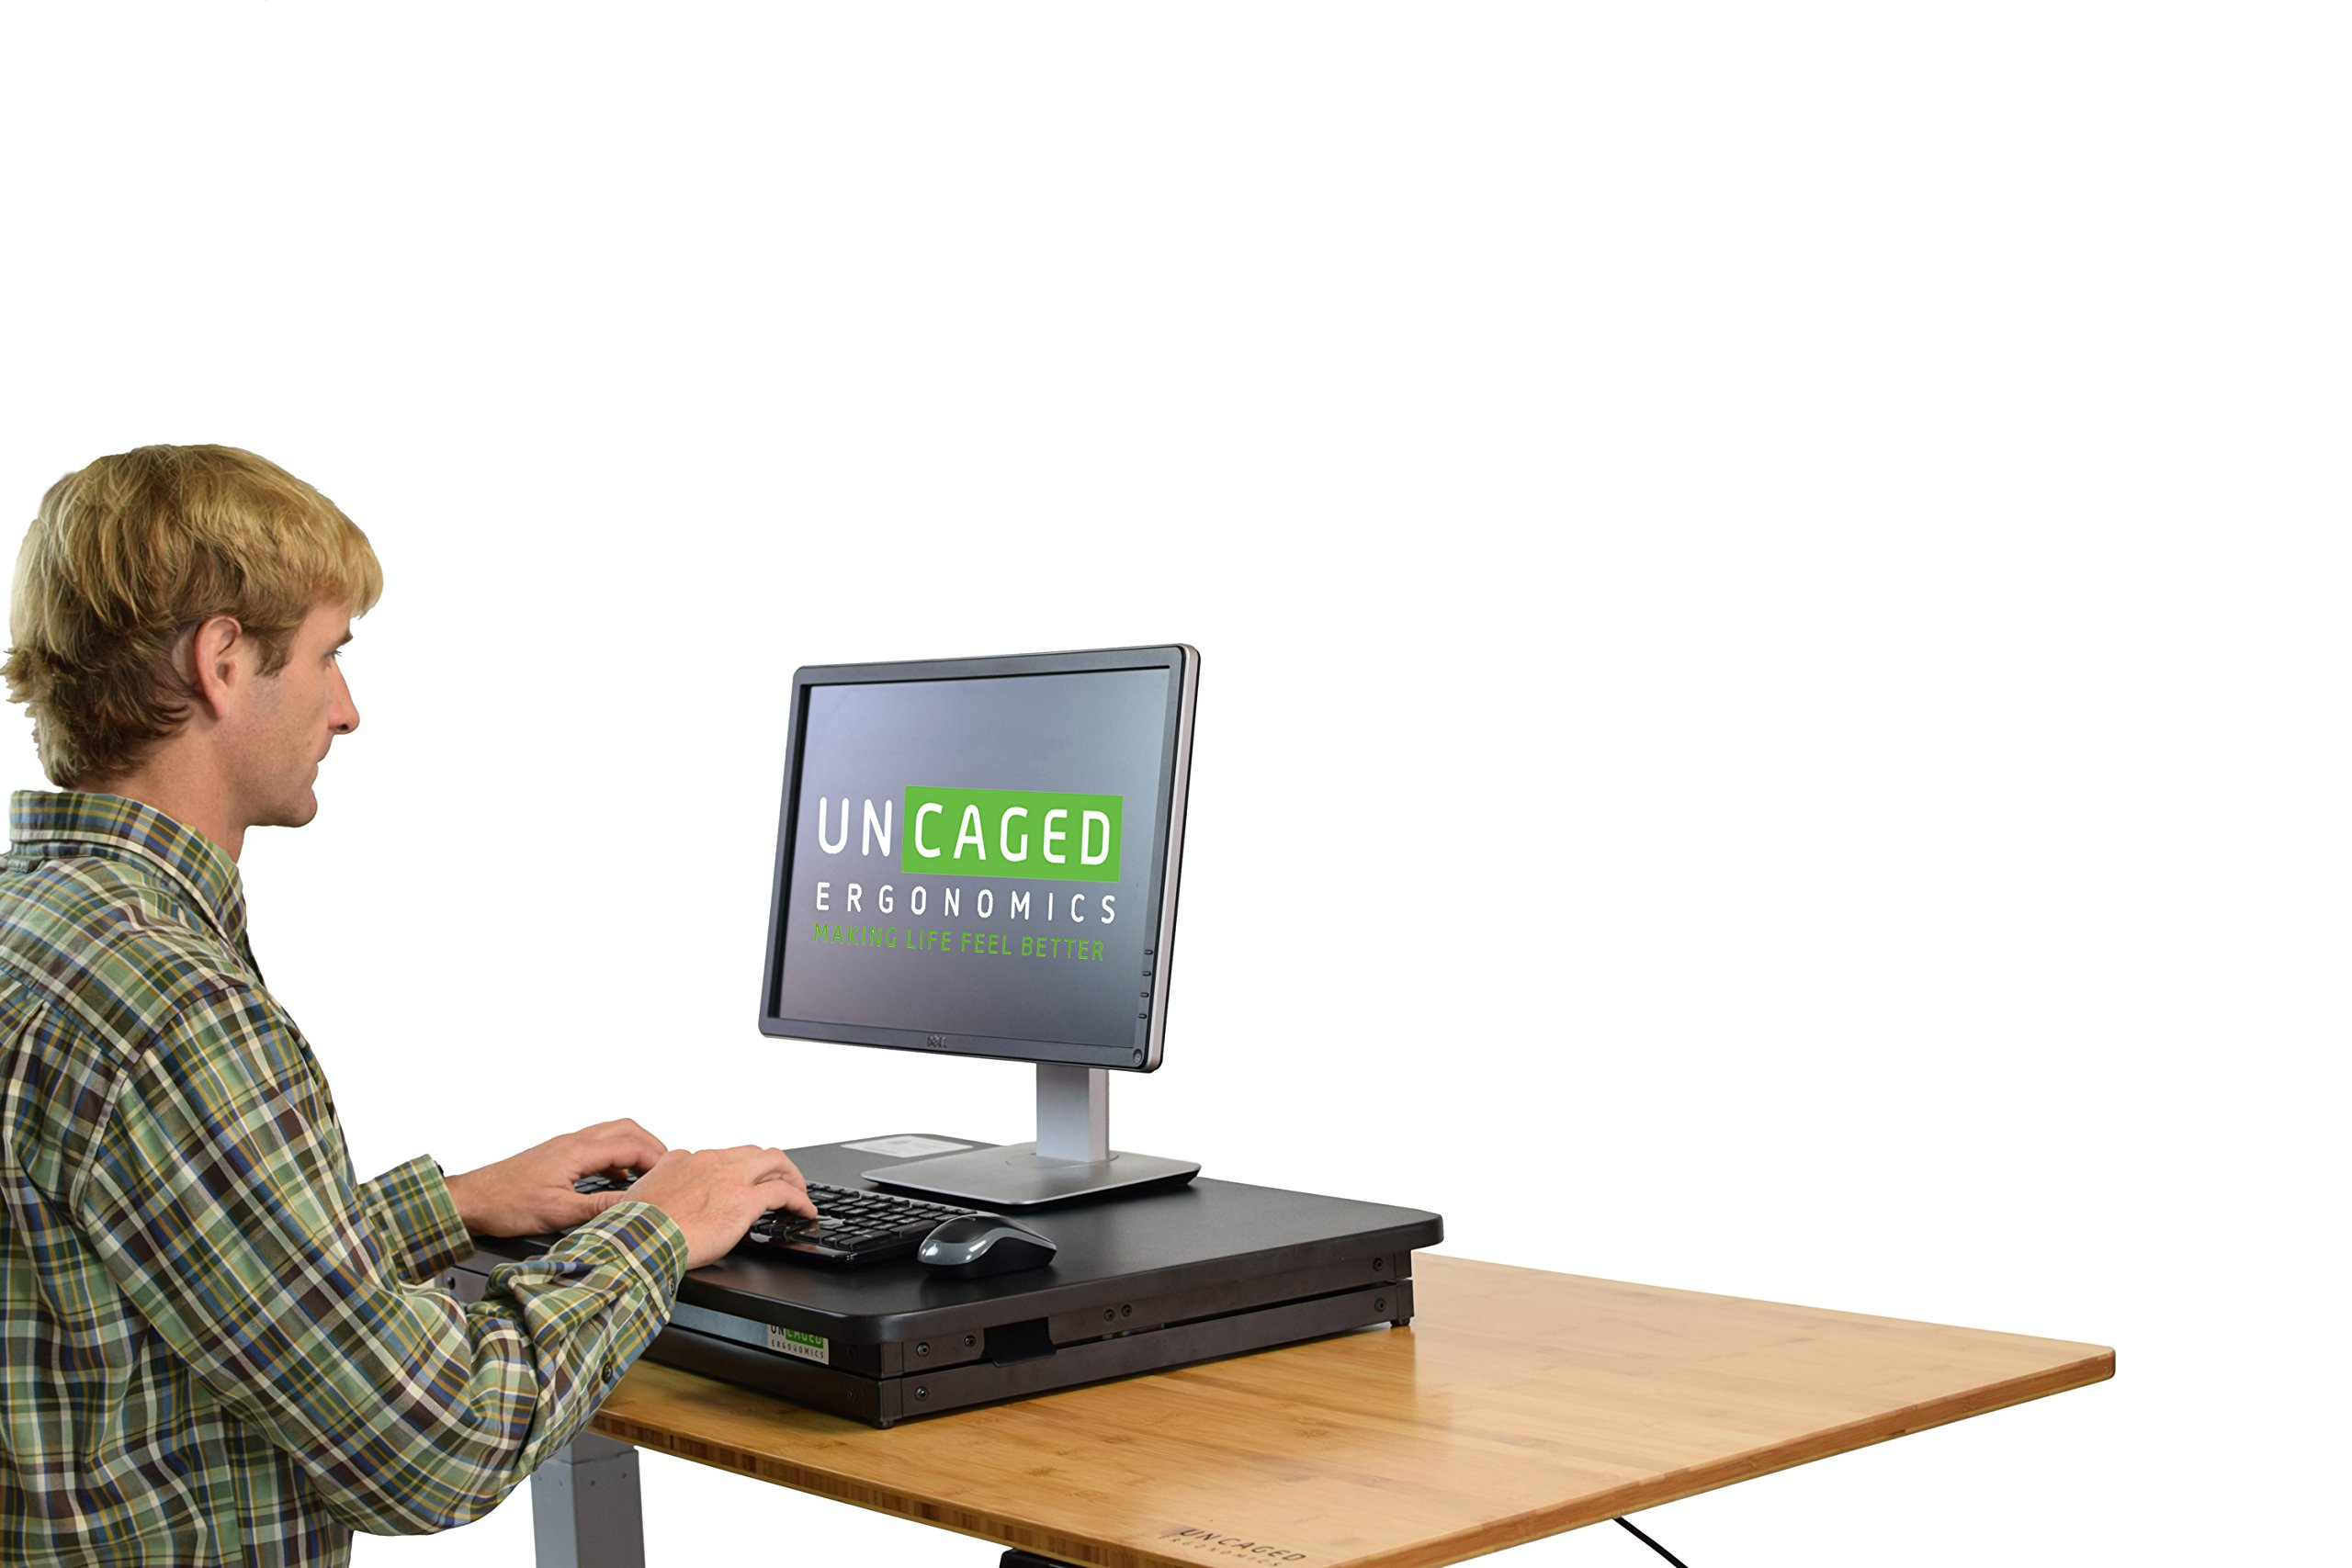 CHANGEdesk Mini Small Adjustable Height Standing Desk Converter for Laptop MacBook Single Monitor Desktop Computer Portable Lightweight Ergonomic sit Stand up Corner Riser Affordable Compact Tabletop by Uncaged Ergonomics (Image #4)